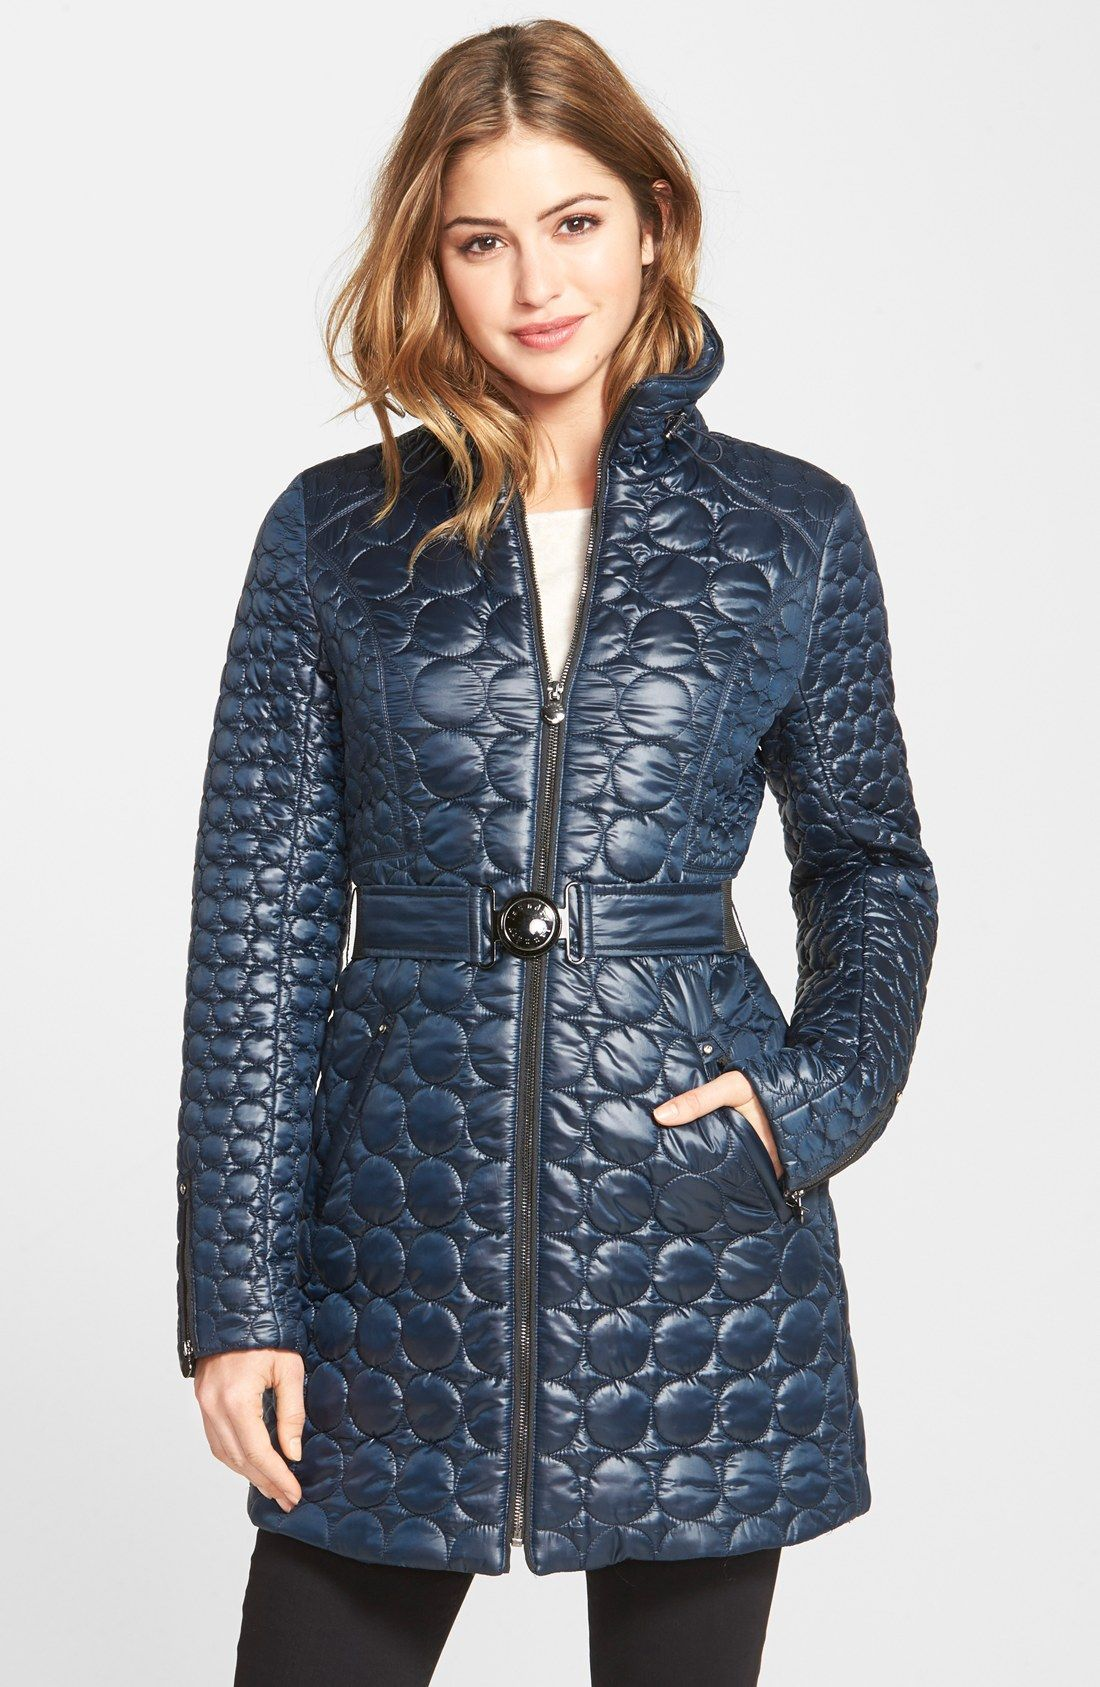 Laundry By Shelli Segal Belted Quilted Coat Regular Petite